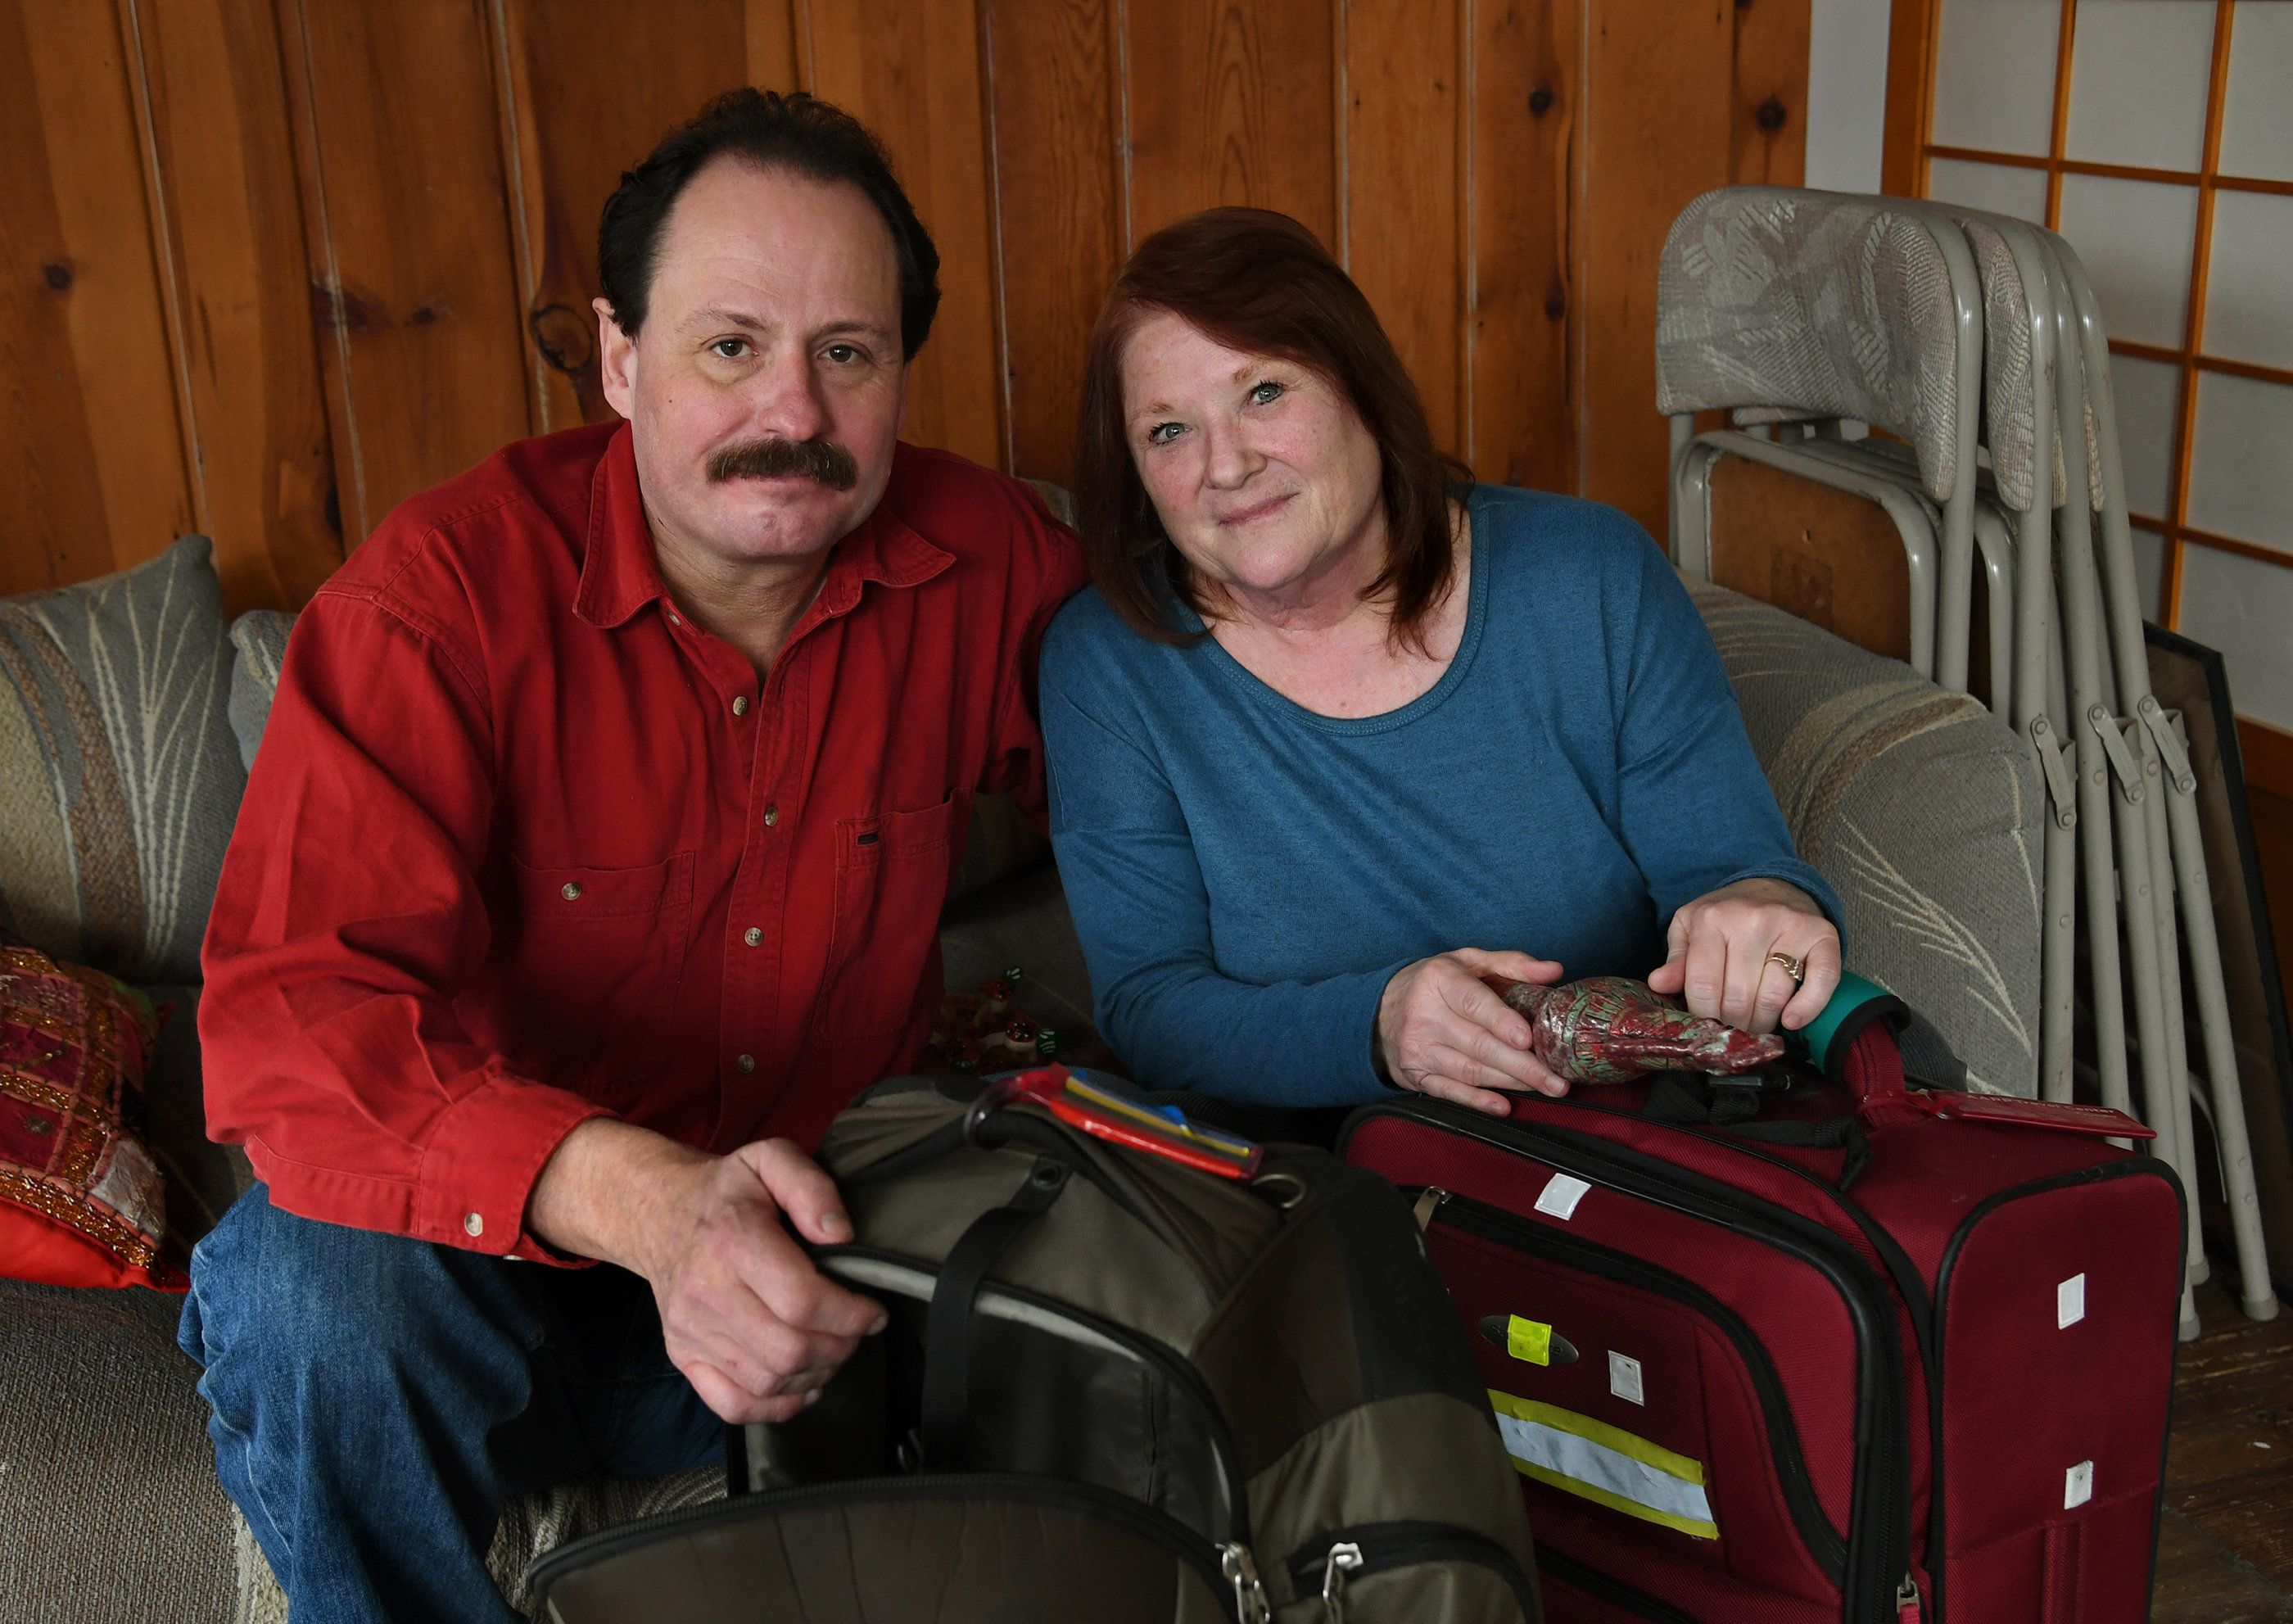 ACCOKEEK, MD-JAN 18: (L) Jeff Yeager and his wife Denise (with suitcases and trinkets from previous trips) are the rare individuals who threatened to leave the country if Trump was elected president, and actually are. The Yeager's may even sell their Accokeek home. They've already visited Ireland, plan to go next to Central America, then onto Eastern Europe (and Russia) on their year-long quest to find a new home for four years. Or eight. (Photo by Michael S. Williamson/The Washington Post via Getty Images)